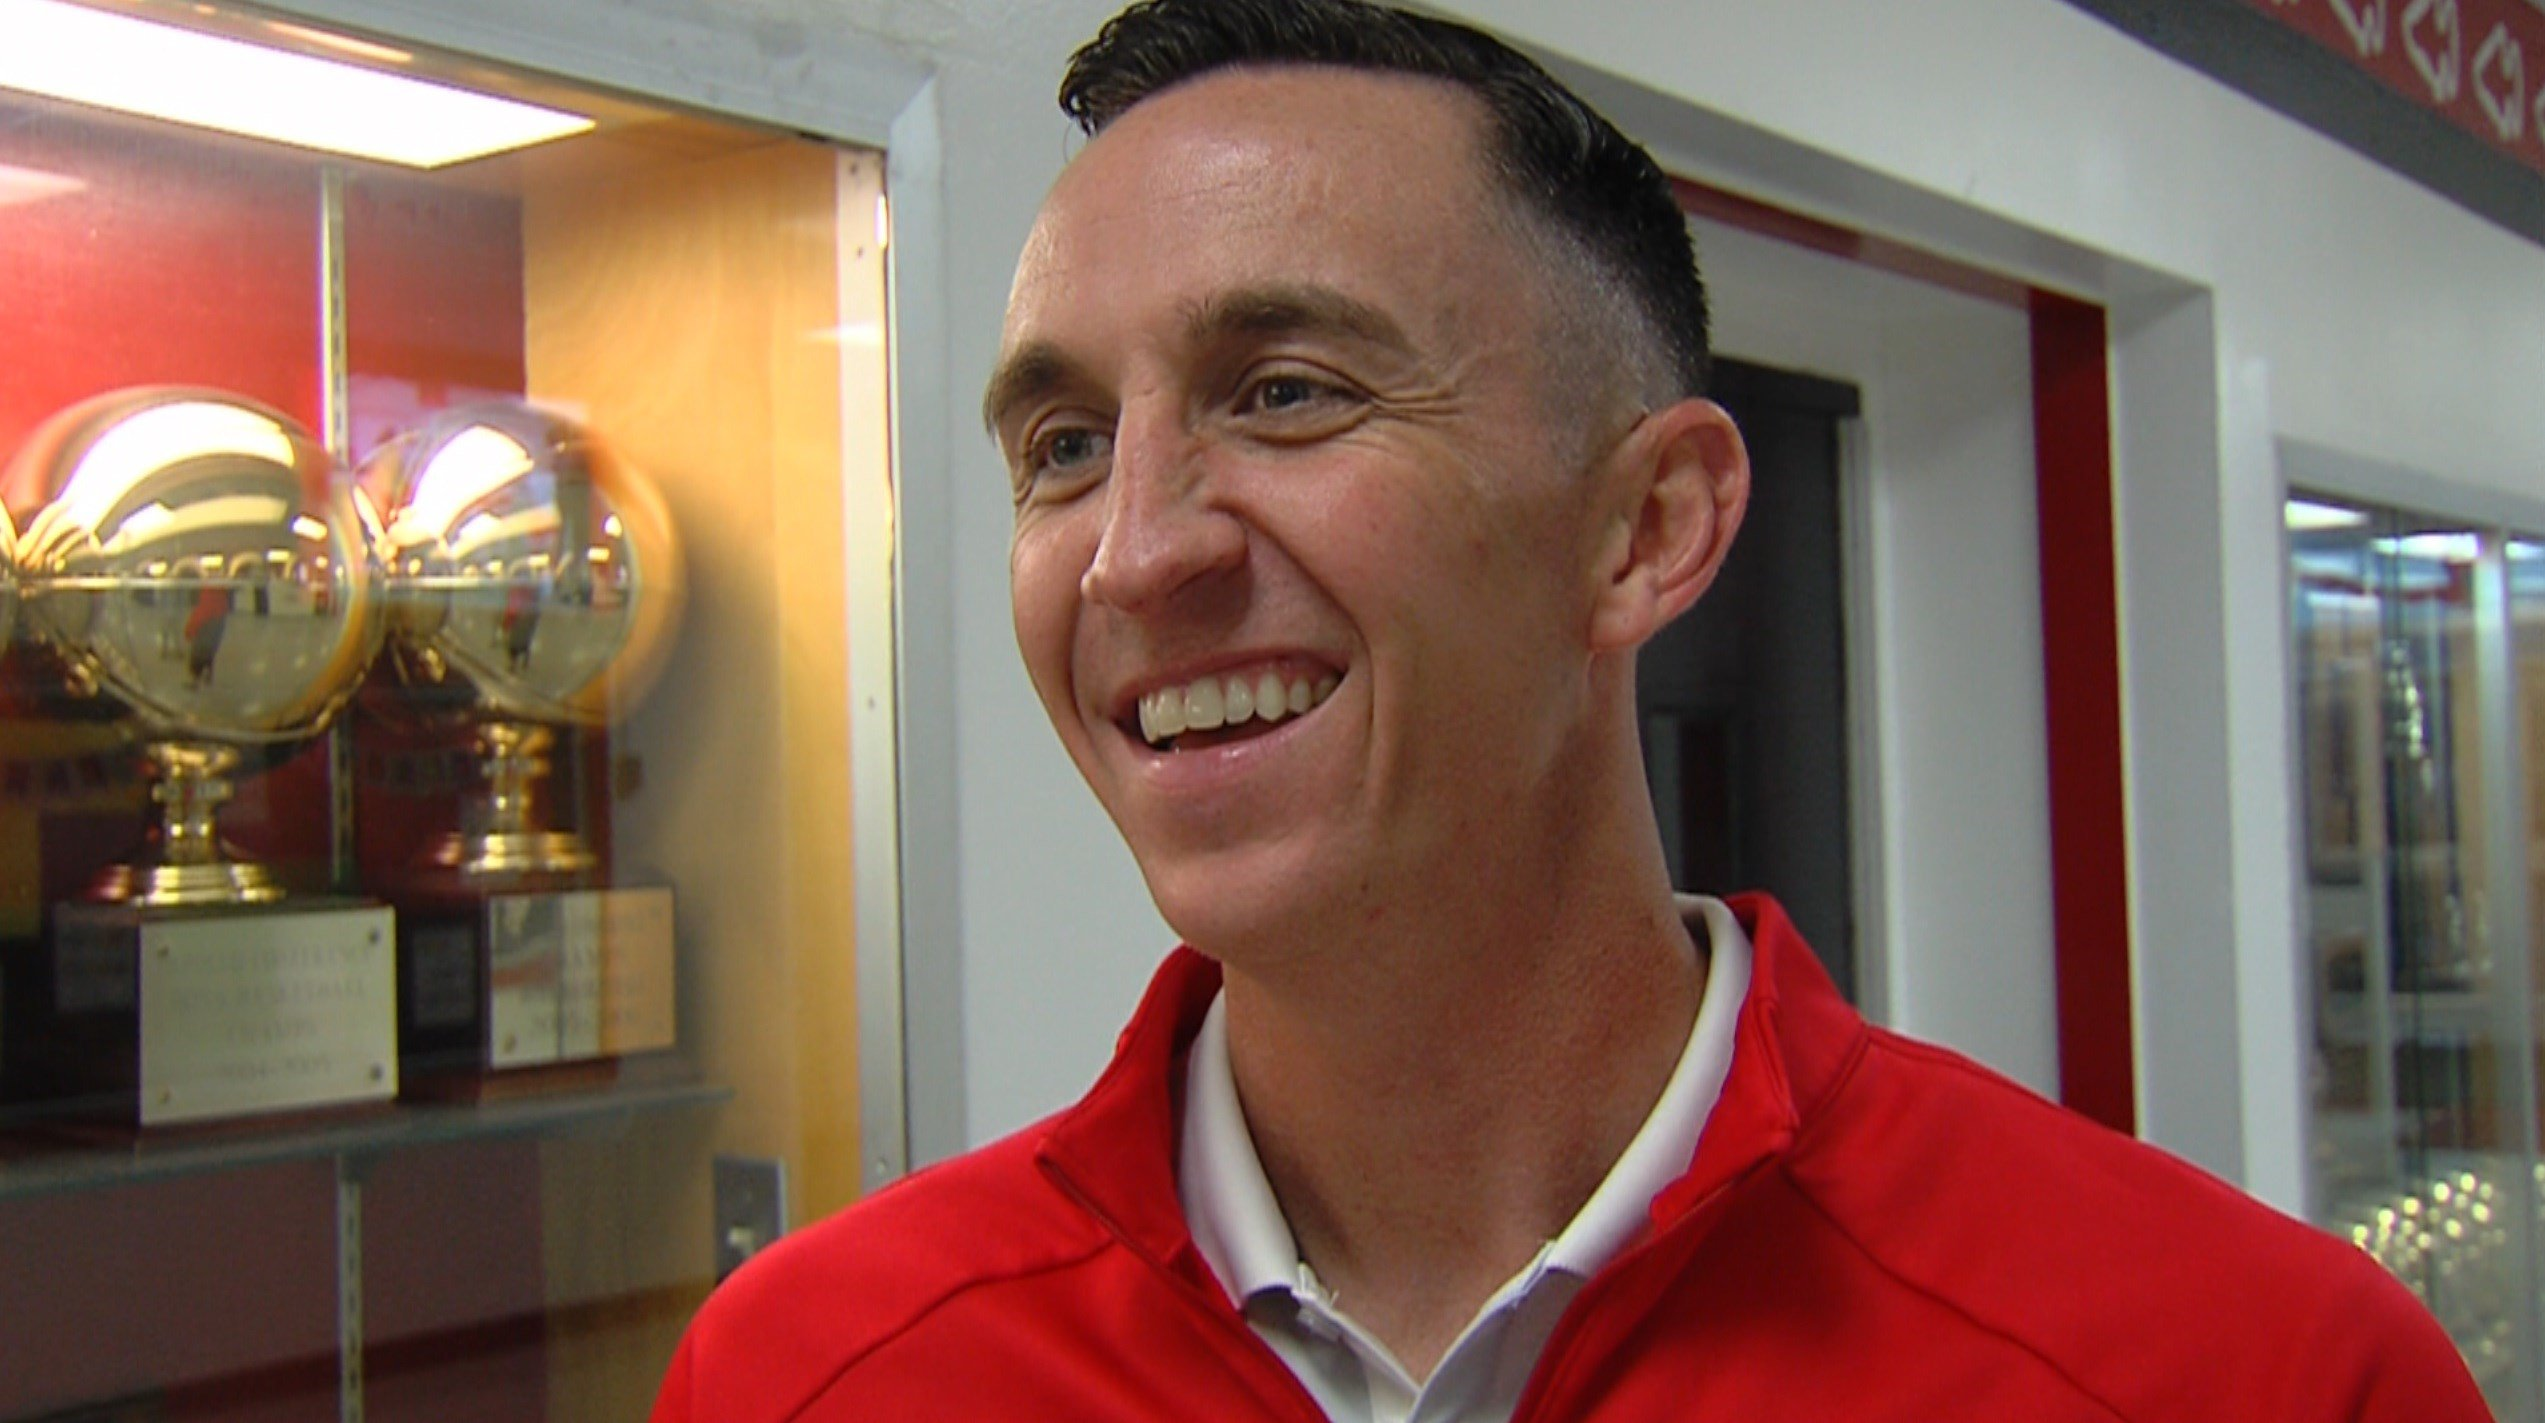 Mt. Zion head coach Bryon Graven and the Braves hosted nearly 20 teams on Monday for the annual Mt. Zion Shootout.